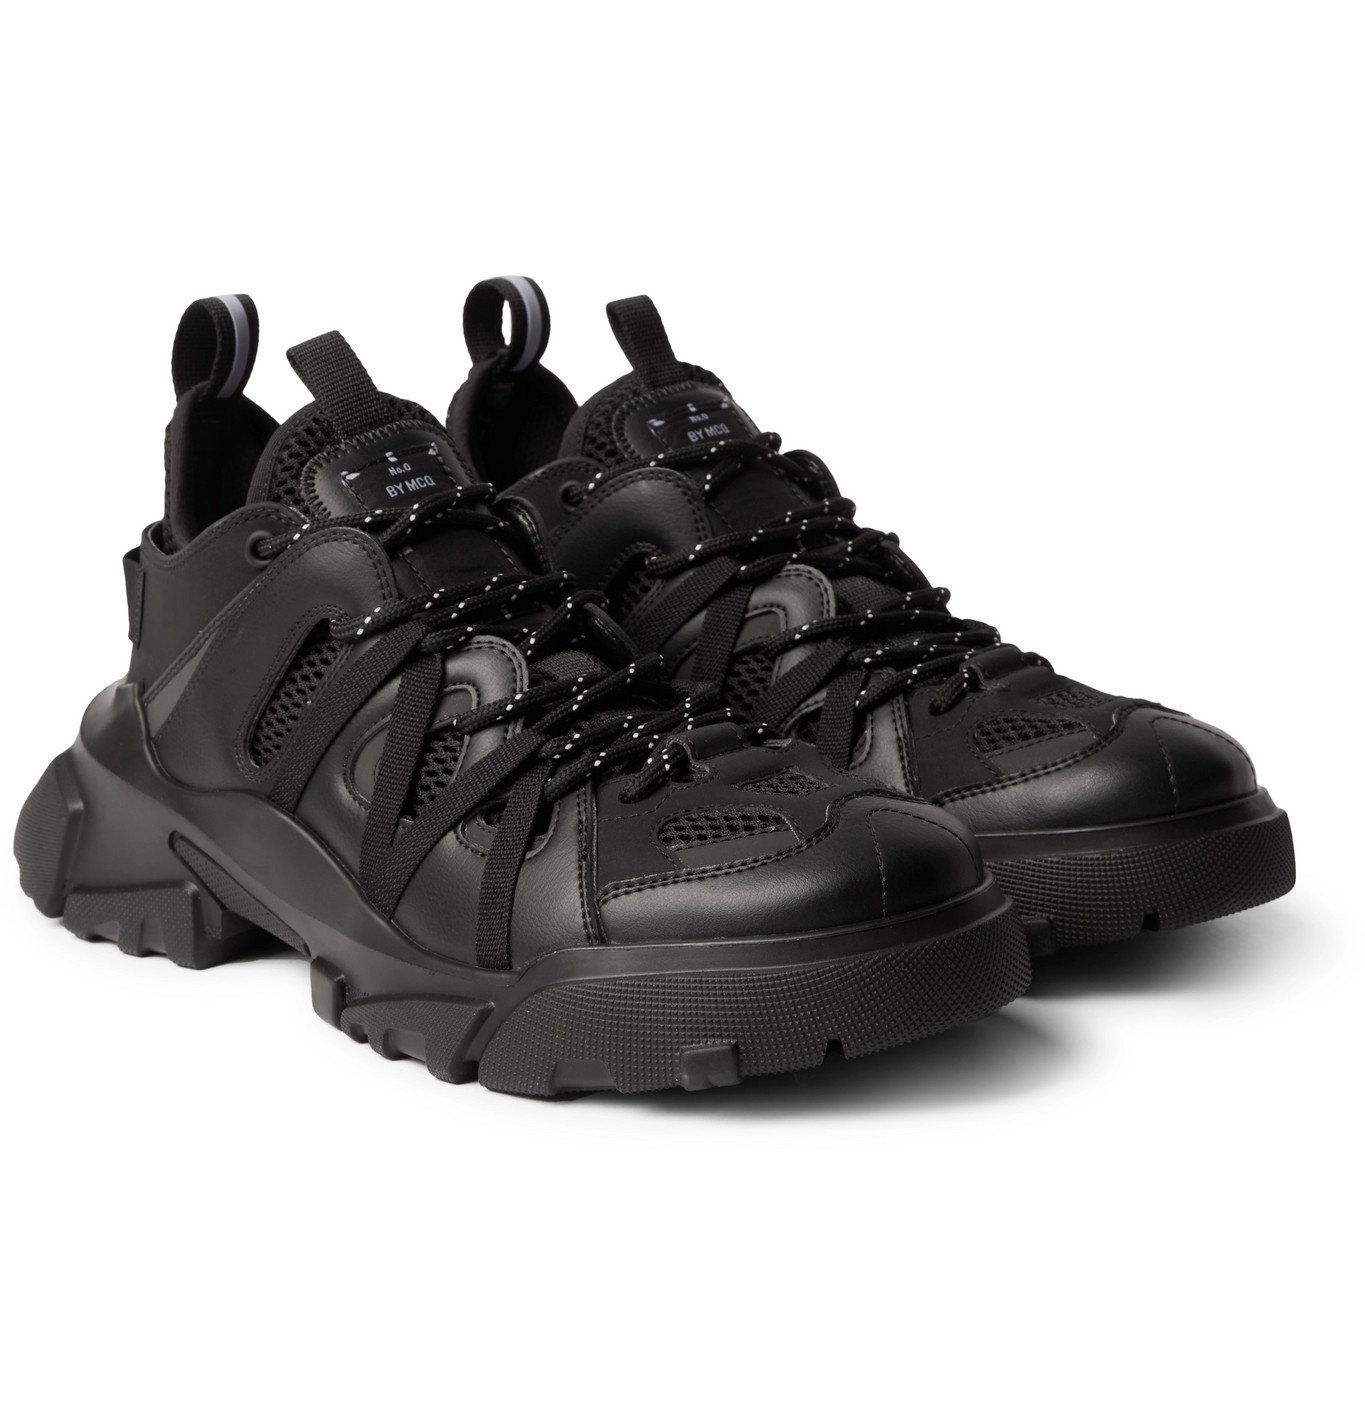 MCQ - Orbyt Descender 2.0 Mesh and Faux Leather Sneakers - Black